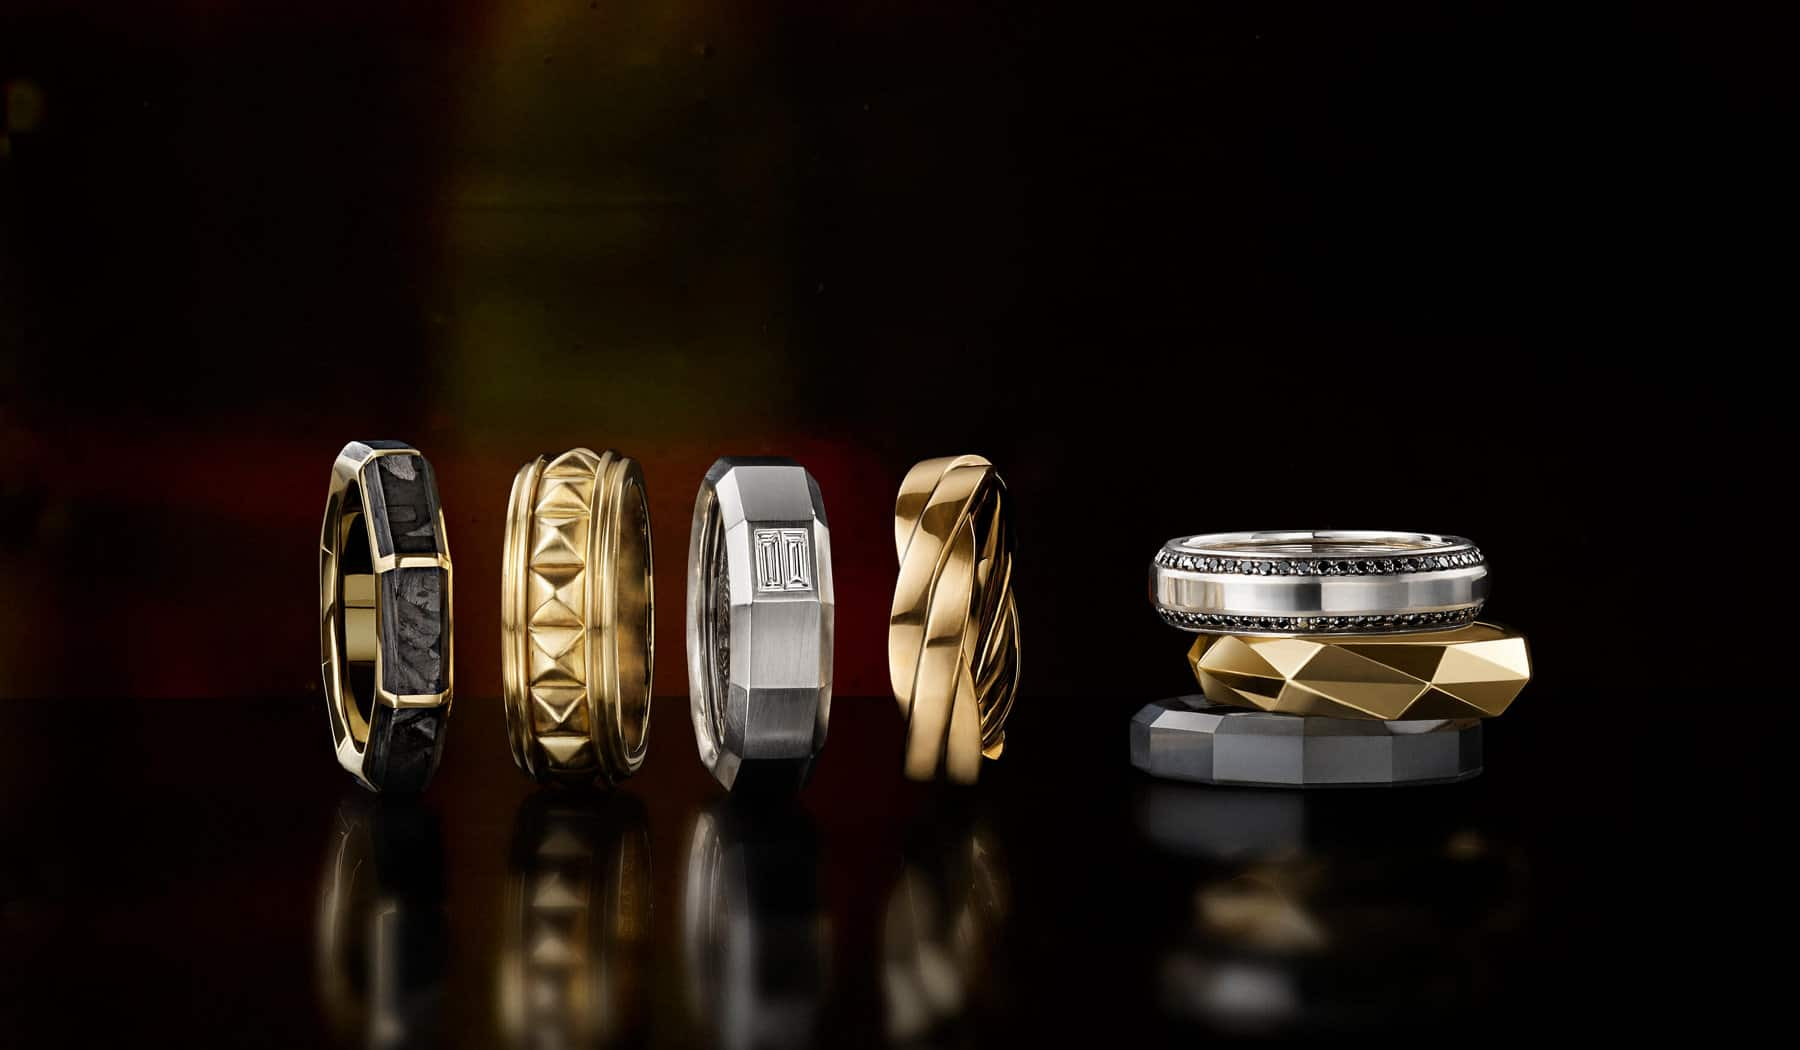 A color photo shows a vertical stack of three David Yurman men's bands to the right of a horizontal row of four David Yurman men's bands—all placed on a black reflective surface. Four of the men's rings are crafted from 18K yellow gold with or without forged carbon. Two of the rings are crafted from 18K white gold with black or white diamonds. The final ring is crafted from black titanium.